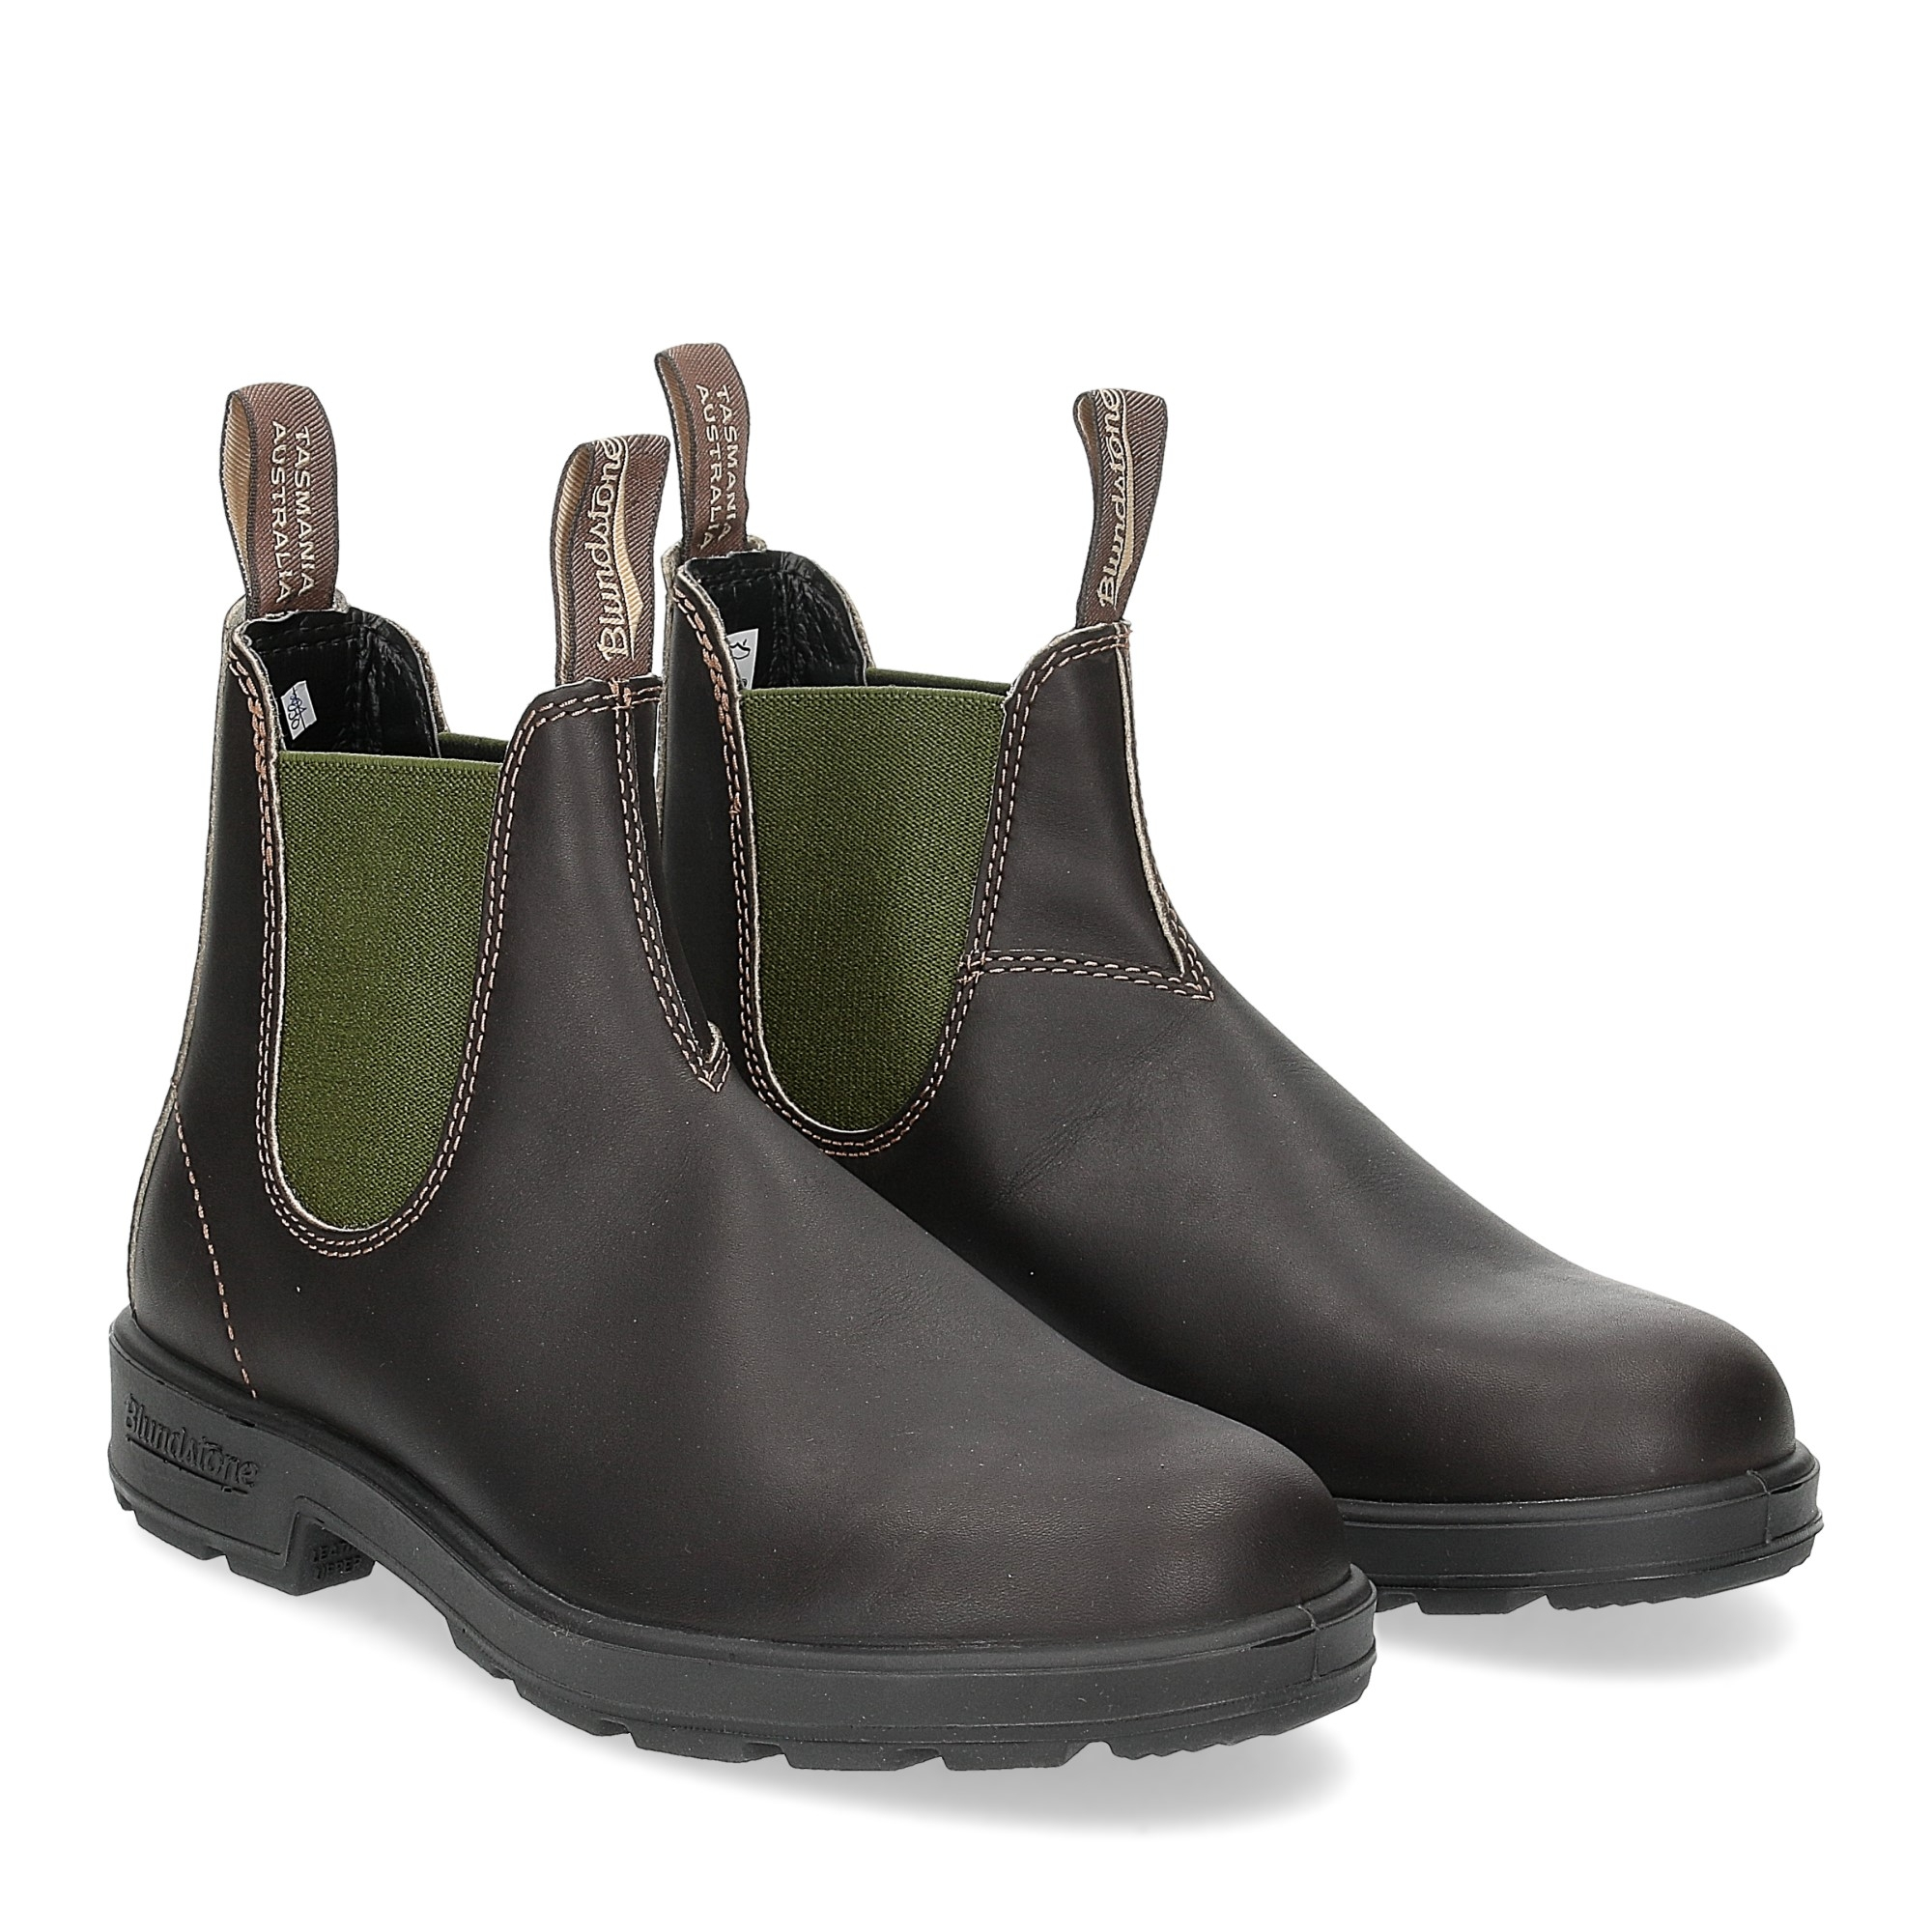 Blundstone 519 stout brown olive woman